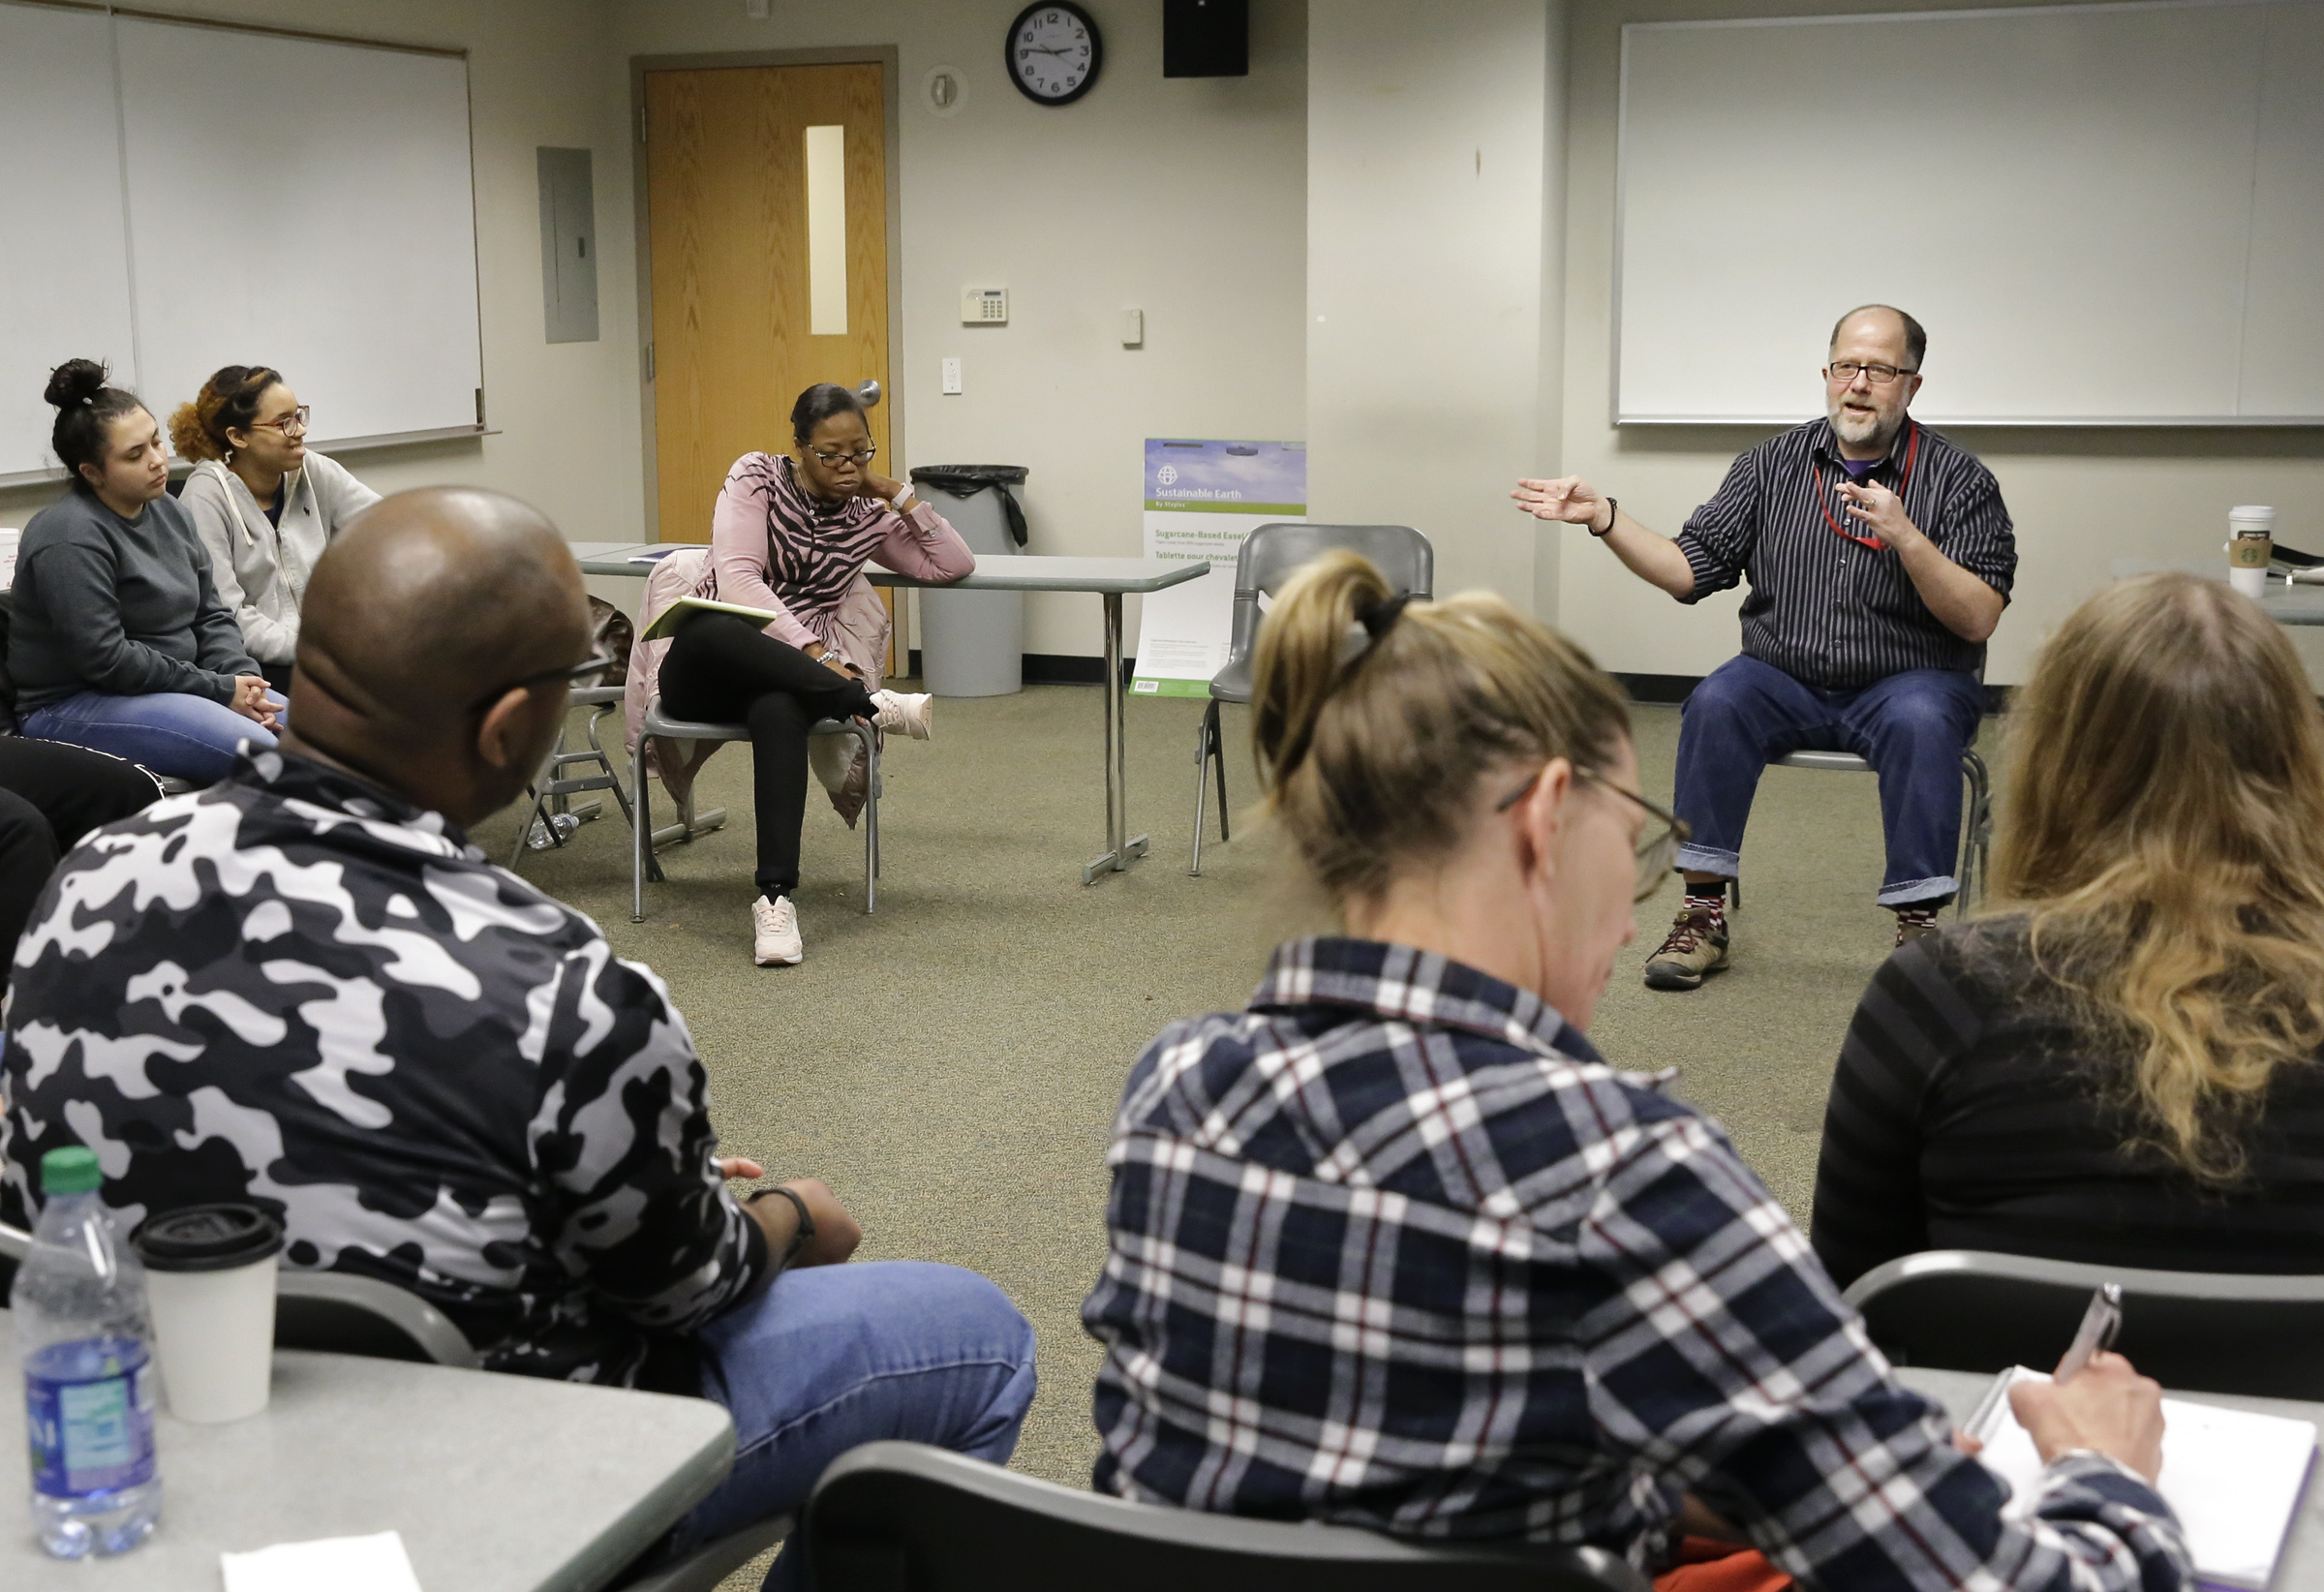 Jeff Draine (right) leads a discussion in his social justice class.